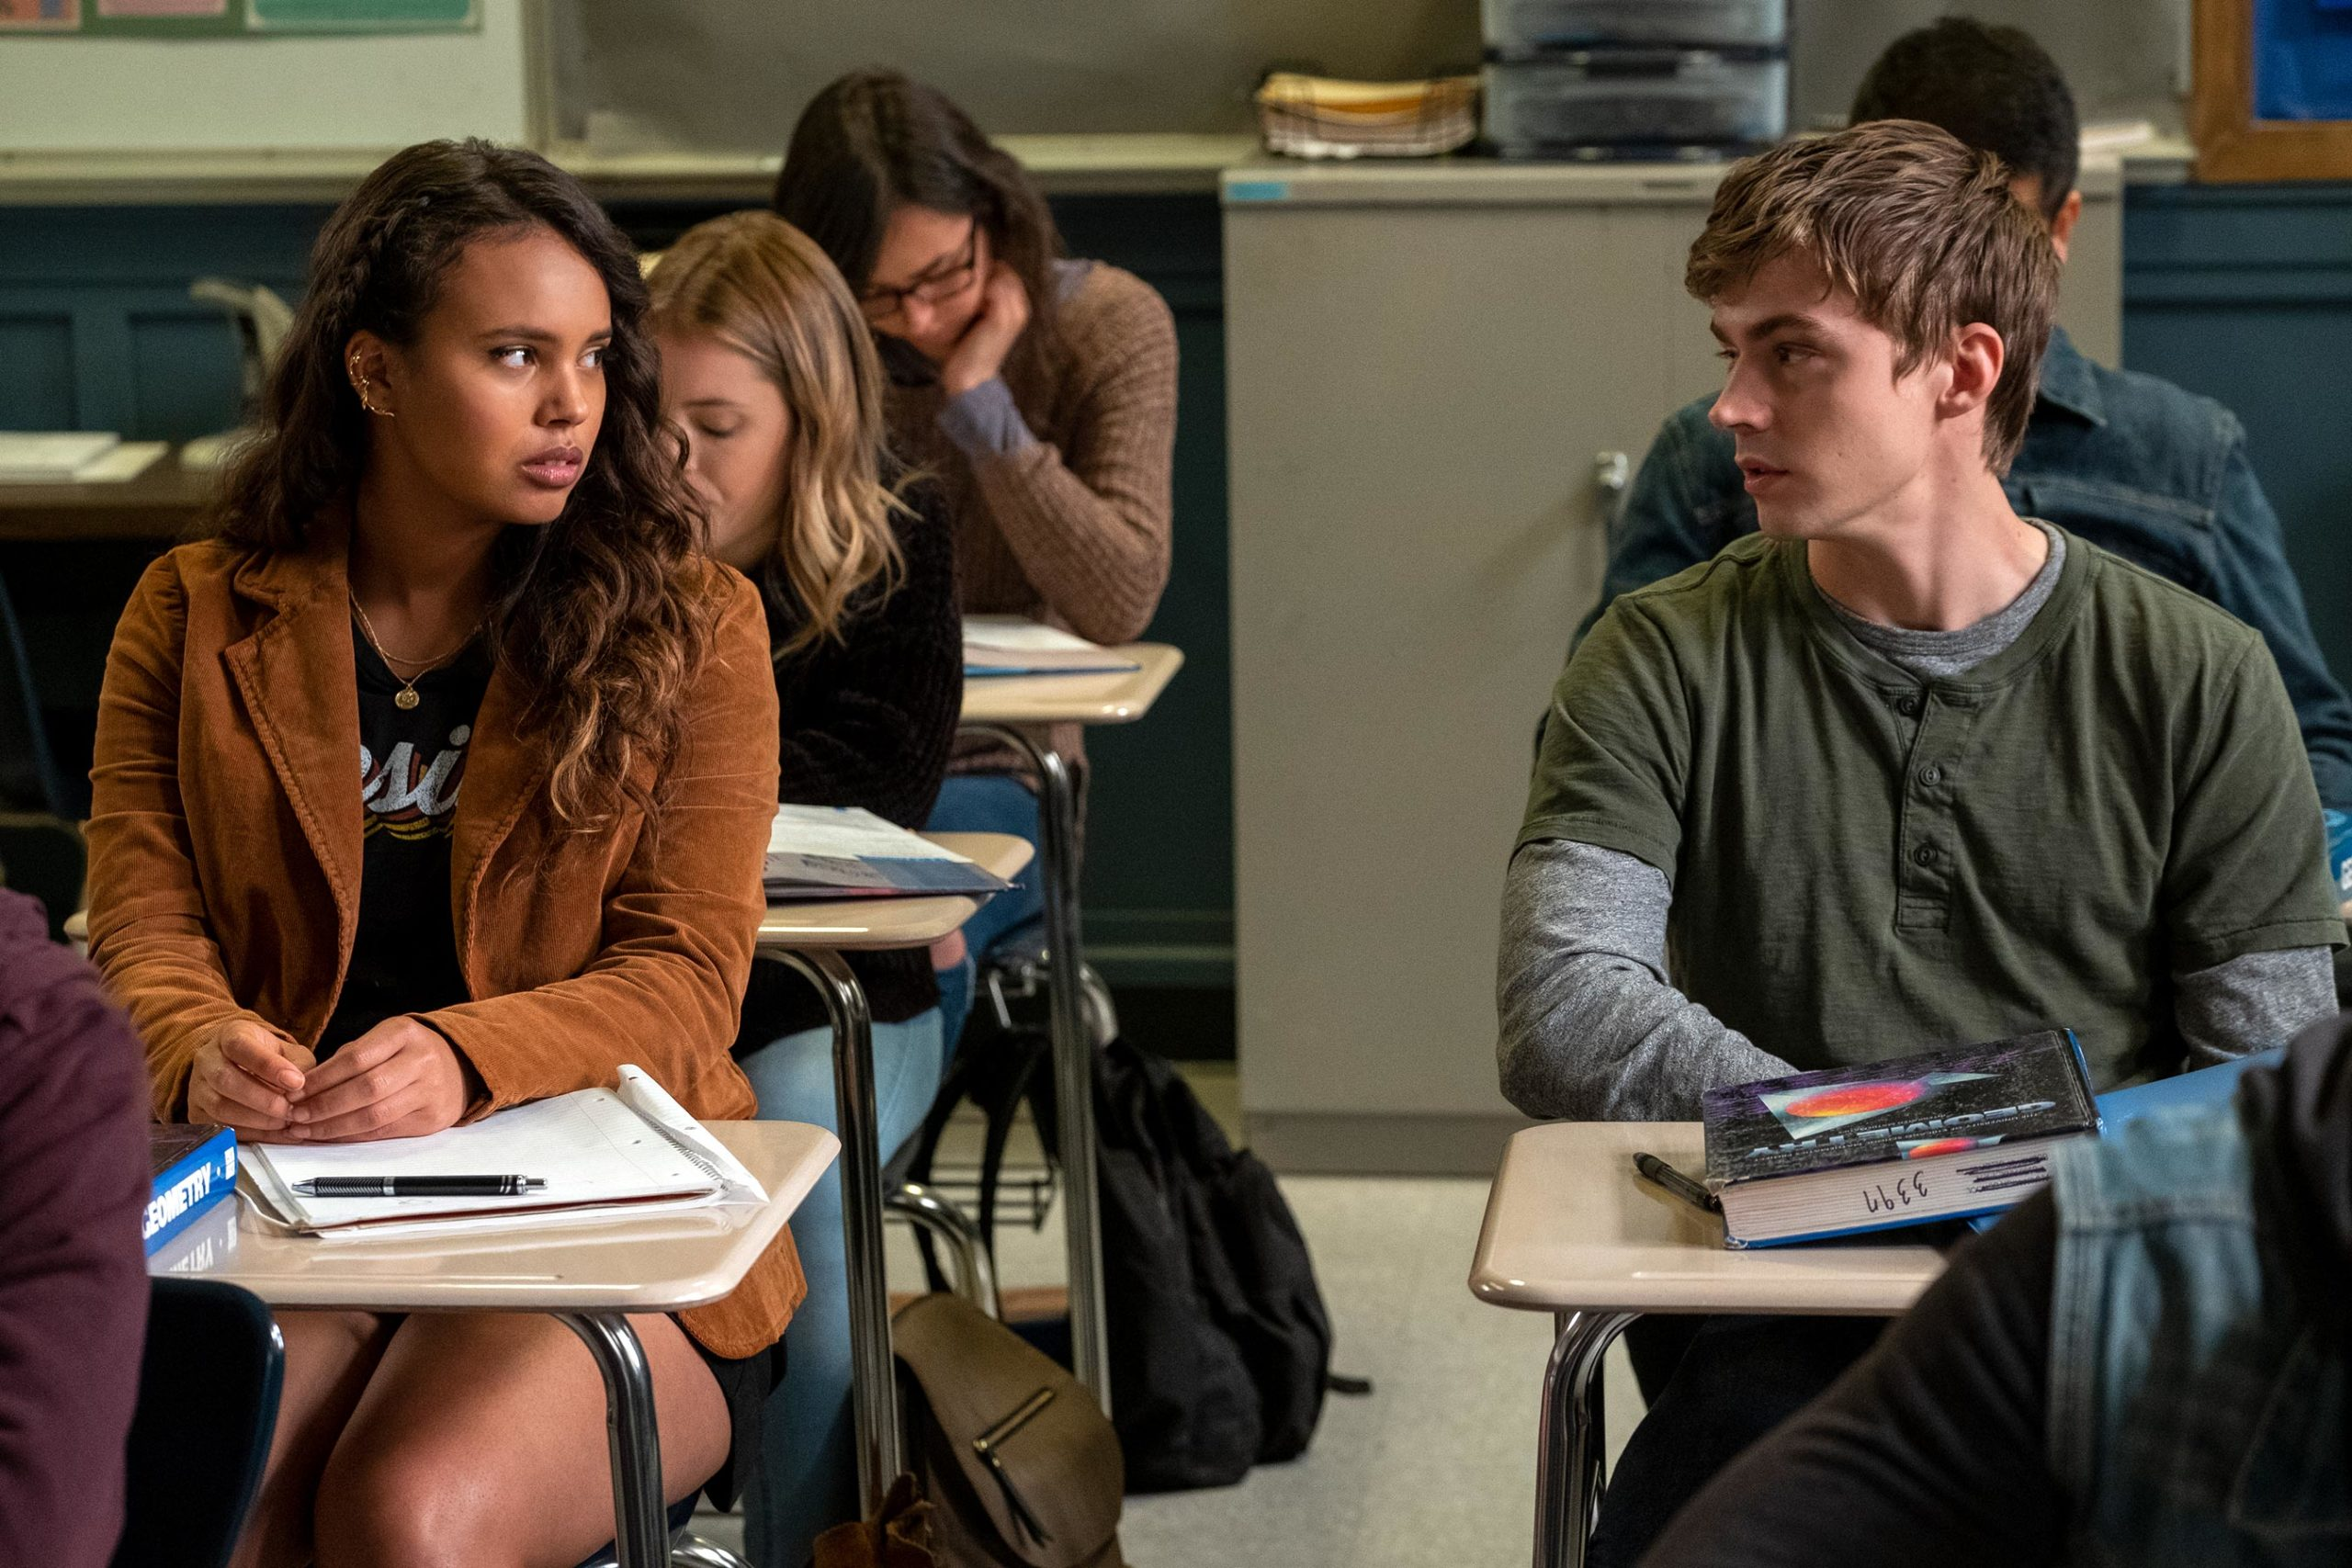 """Netflix: """"13 Reason Why"""" Season 4: Check Here Recent Cast, Plot & Release Date Details Of This Final Season"""